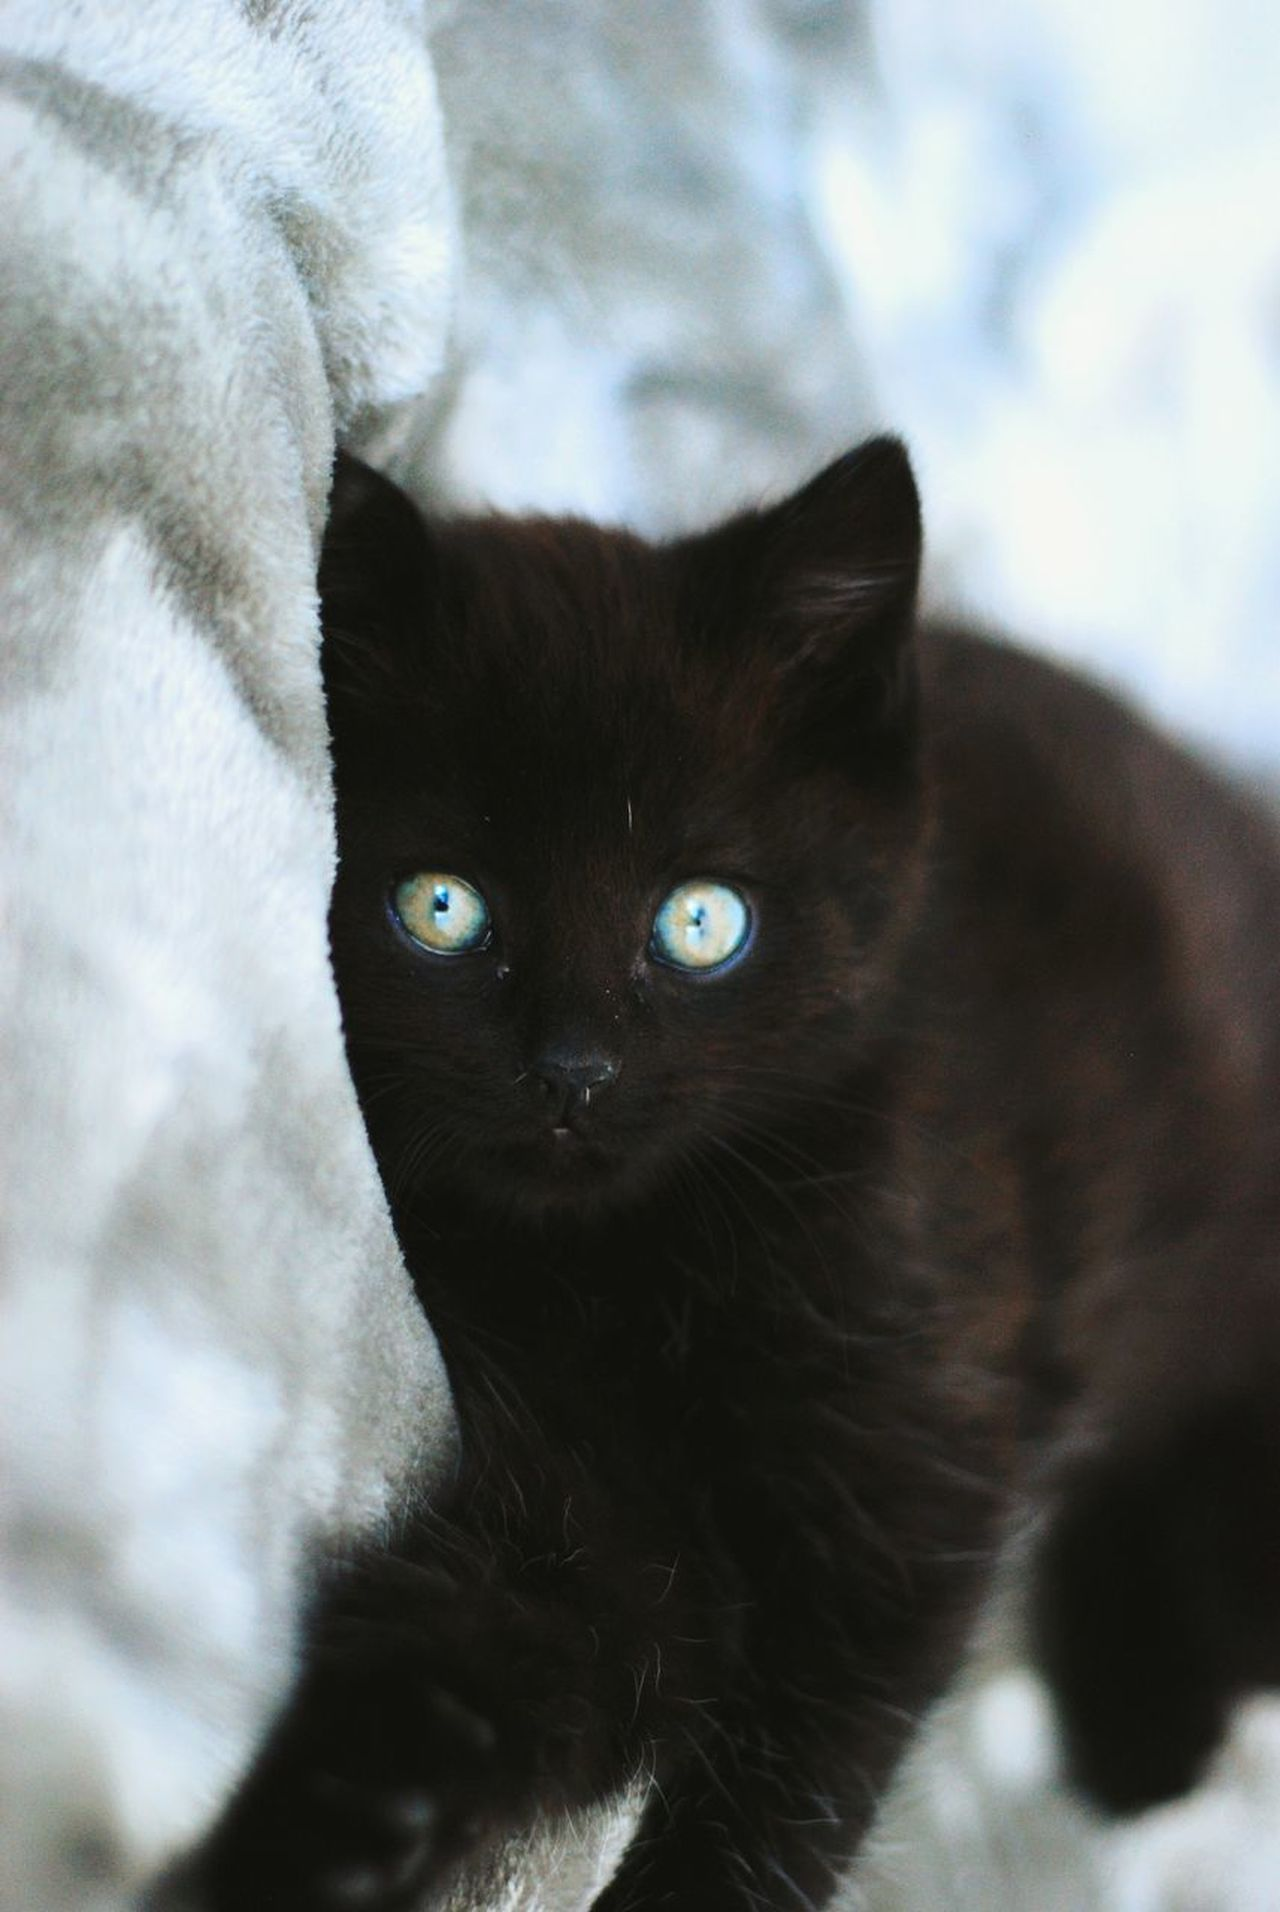 Cat Eye Animal Kitty Family Pets Kitten Cats Of EyeEm Catsofinstagram Catlovers Catlover Cateyes One Animal Domestic Cat Black Color Looking At Camera Feline Portrait Yellow Eyes Mammal Domestic Animals Animal Themes No People Close-up Evil BYOPaper!